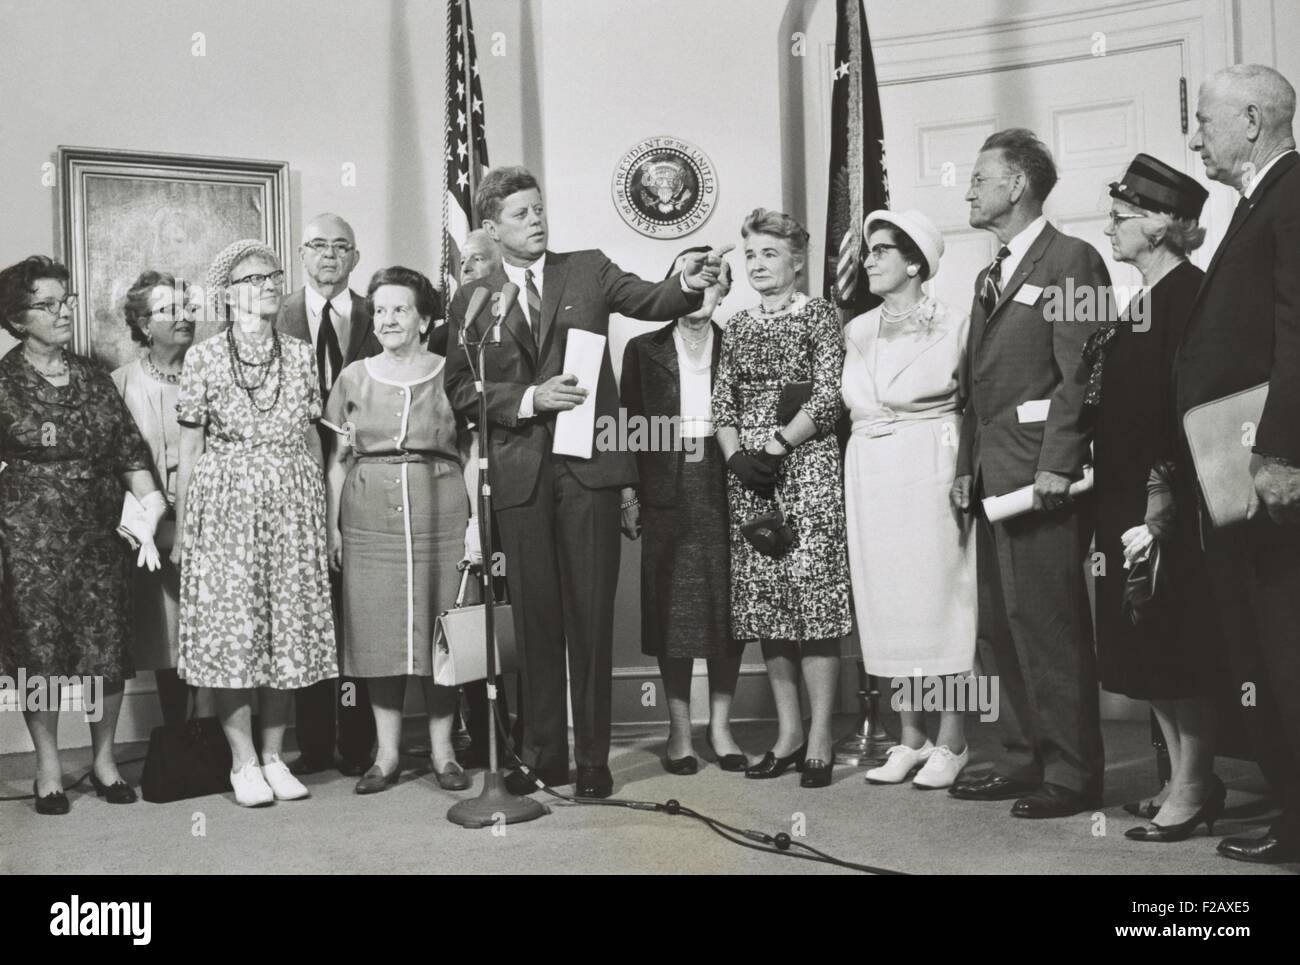 Older Peace Corps volunteers visit President John Kennedy at the White House. Aug. 30, 1962. (BSLOC_2015_2_226) - Stock Image